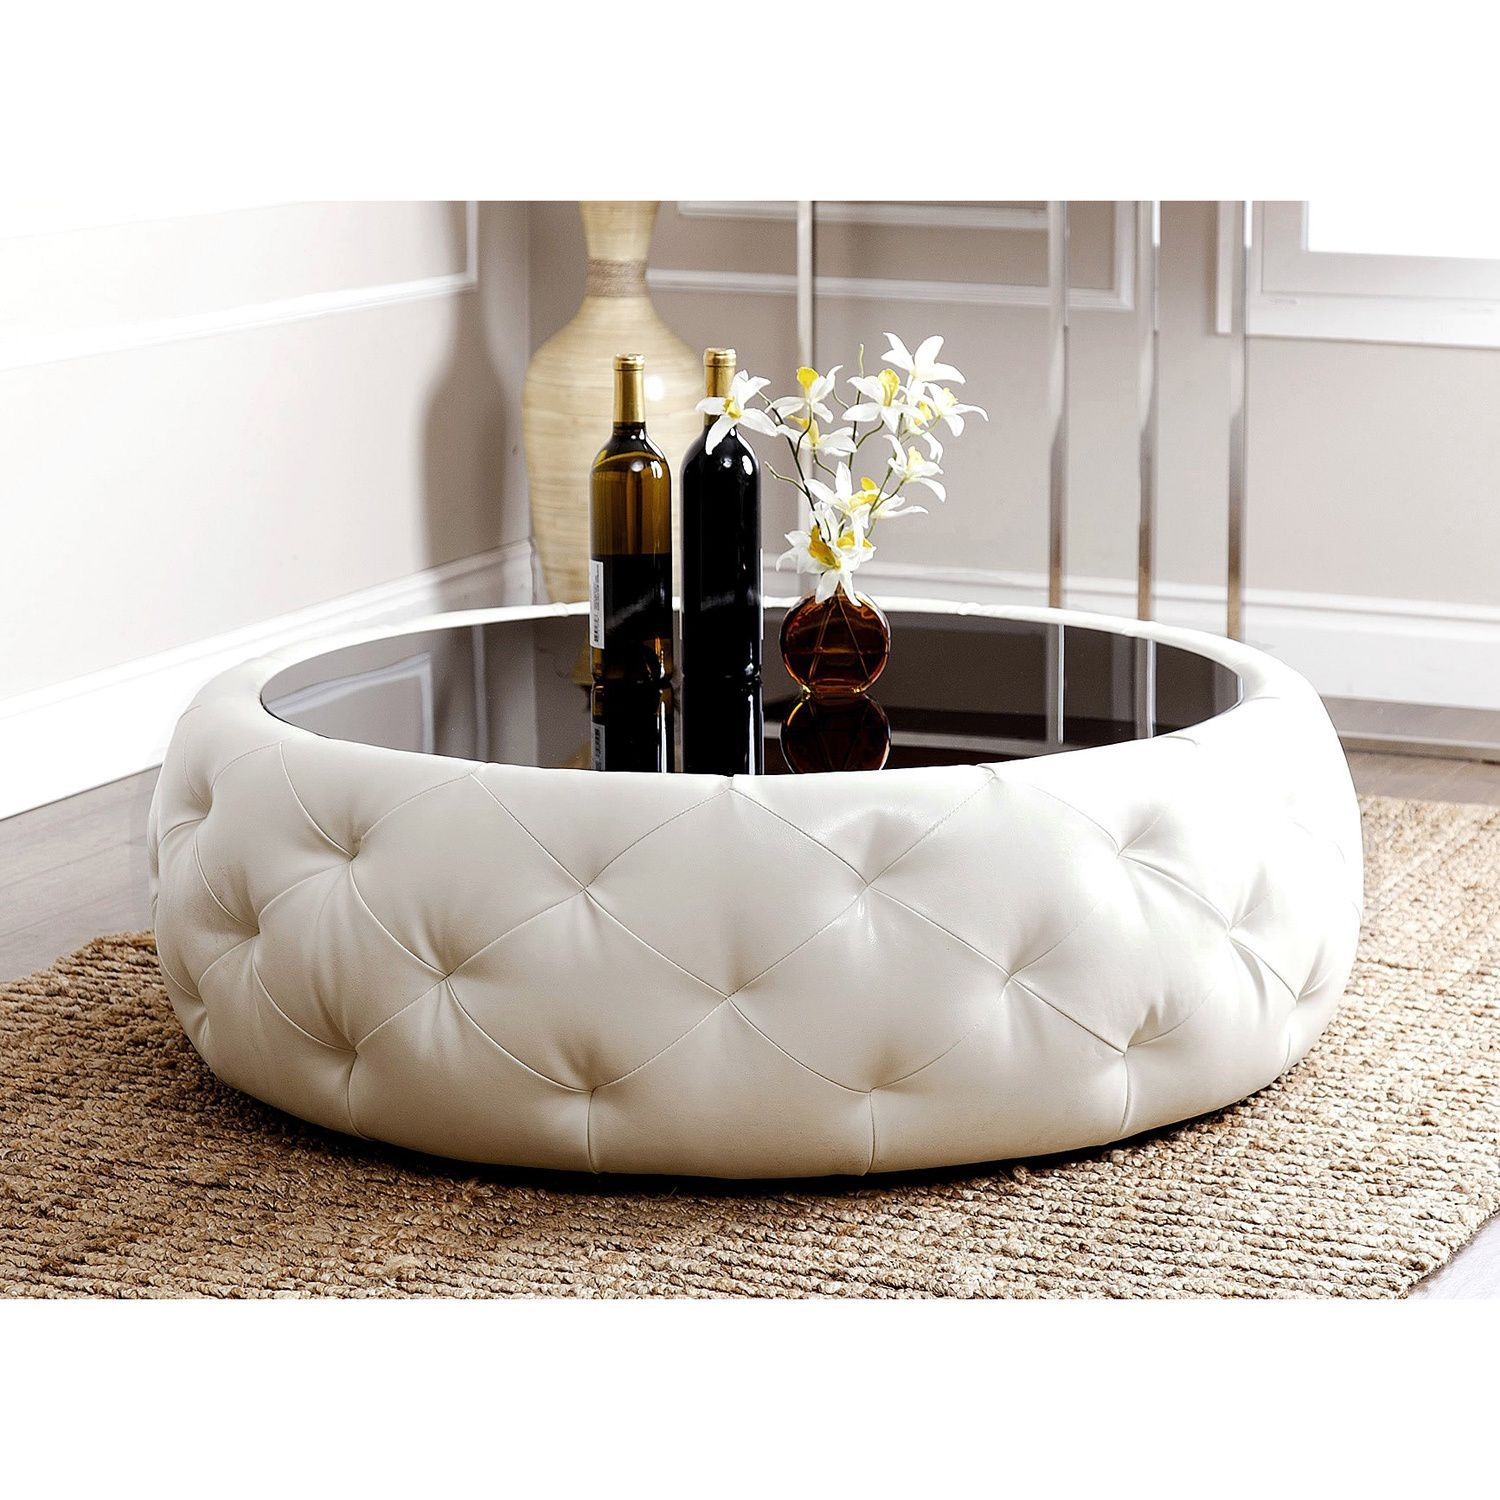 Abbyson living havana round leather coffee table overstock abbyson living havana round leather coffee table overstock shopping great deals on abbyson living geotapseo Image collections